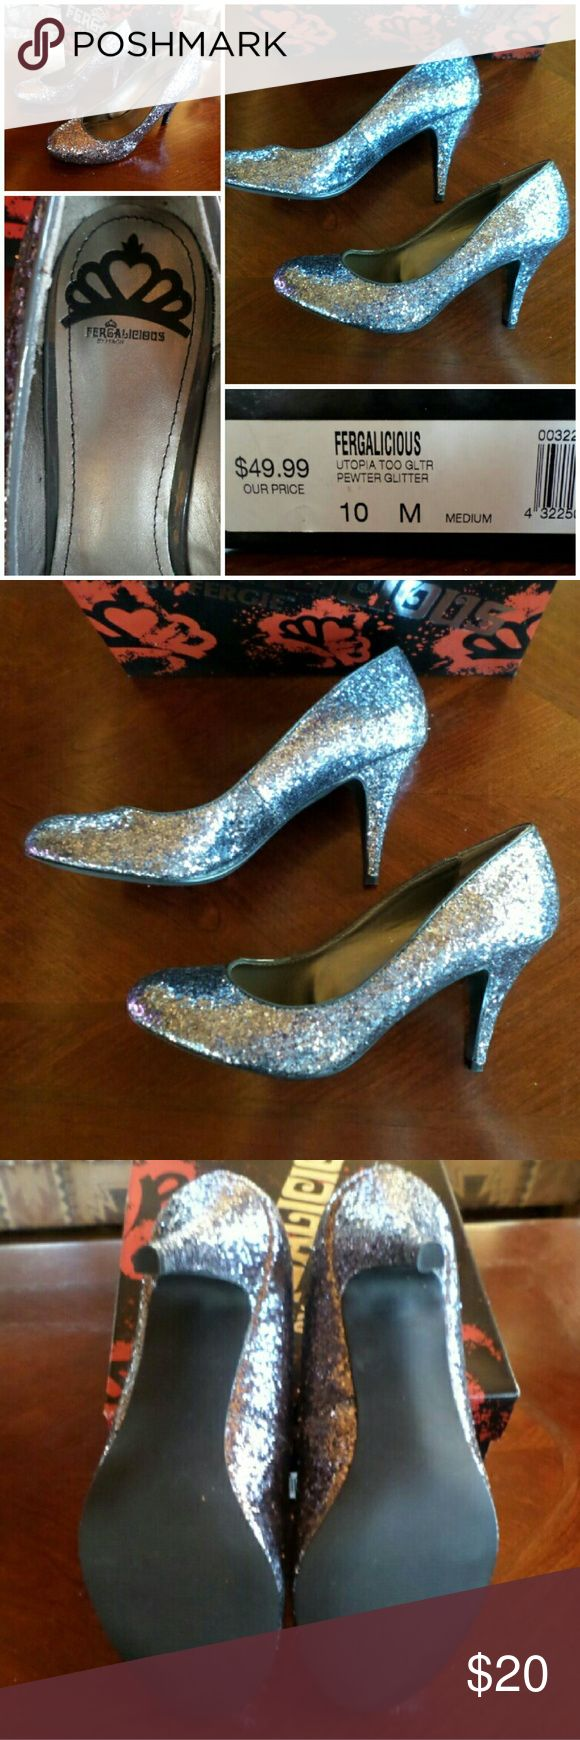 "Silver Fergie Glitter Pumps I bought these four or five years ago and never wore them. Box shows some age and some glitter has fallen off in the box, but overall these are really nice shoes.   Perfect for holiday parties!   Heel is 3.5""  Price is firm. Fergalicious Shoes Heels"